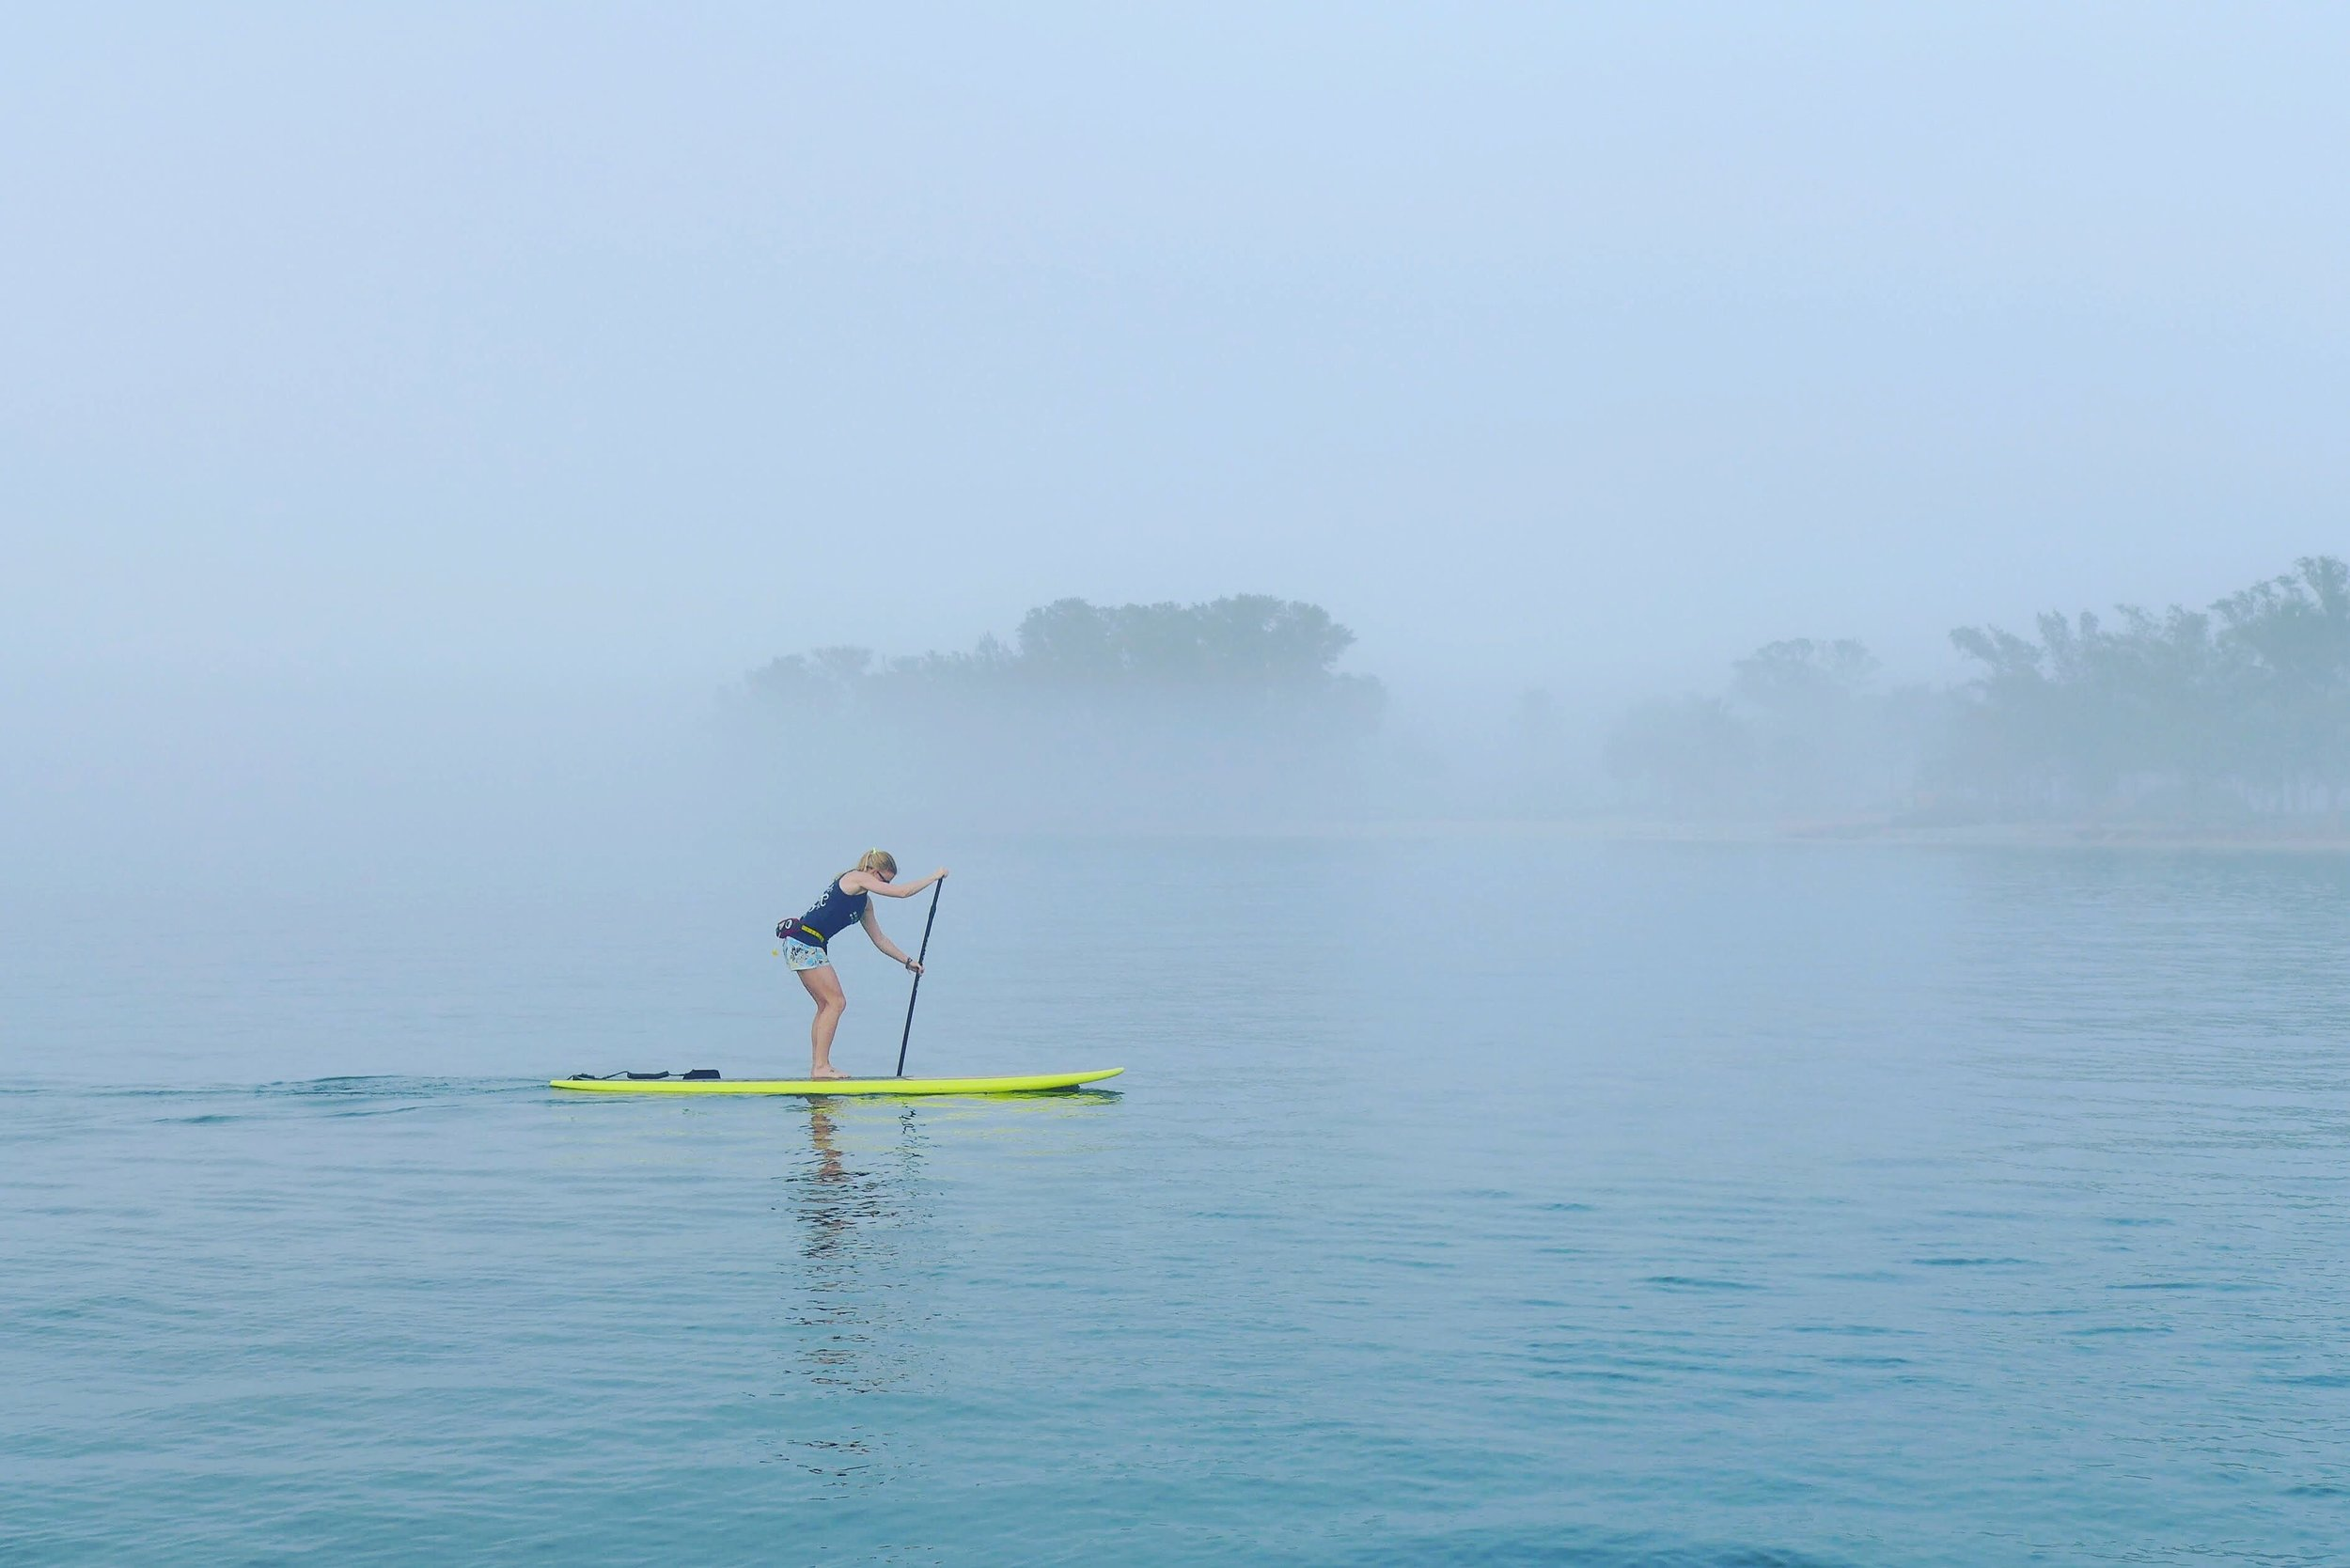 When paddling, focus on technique before speed.